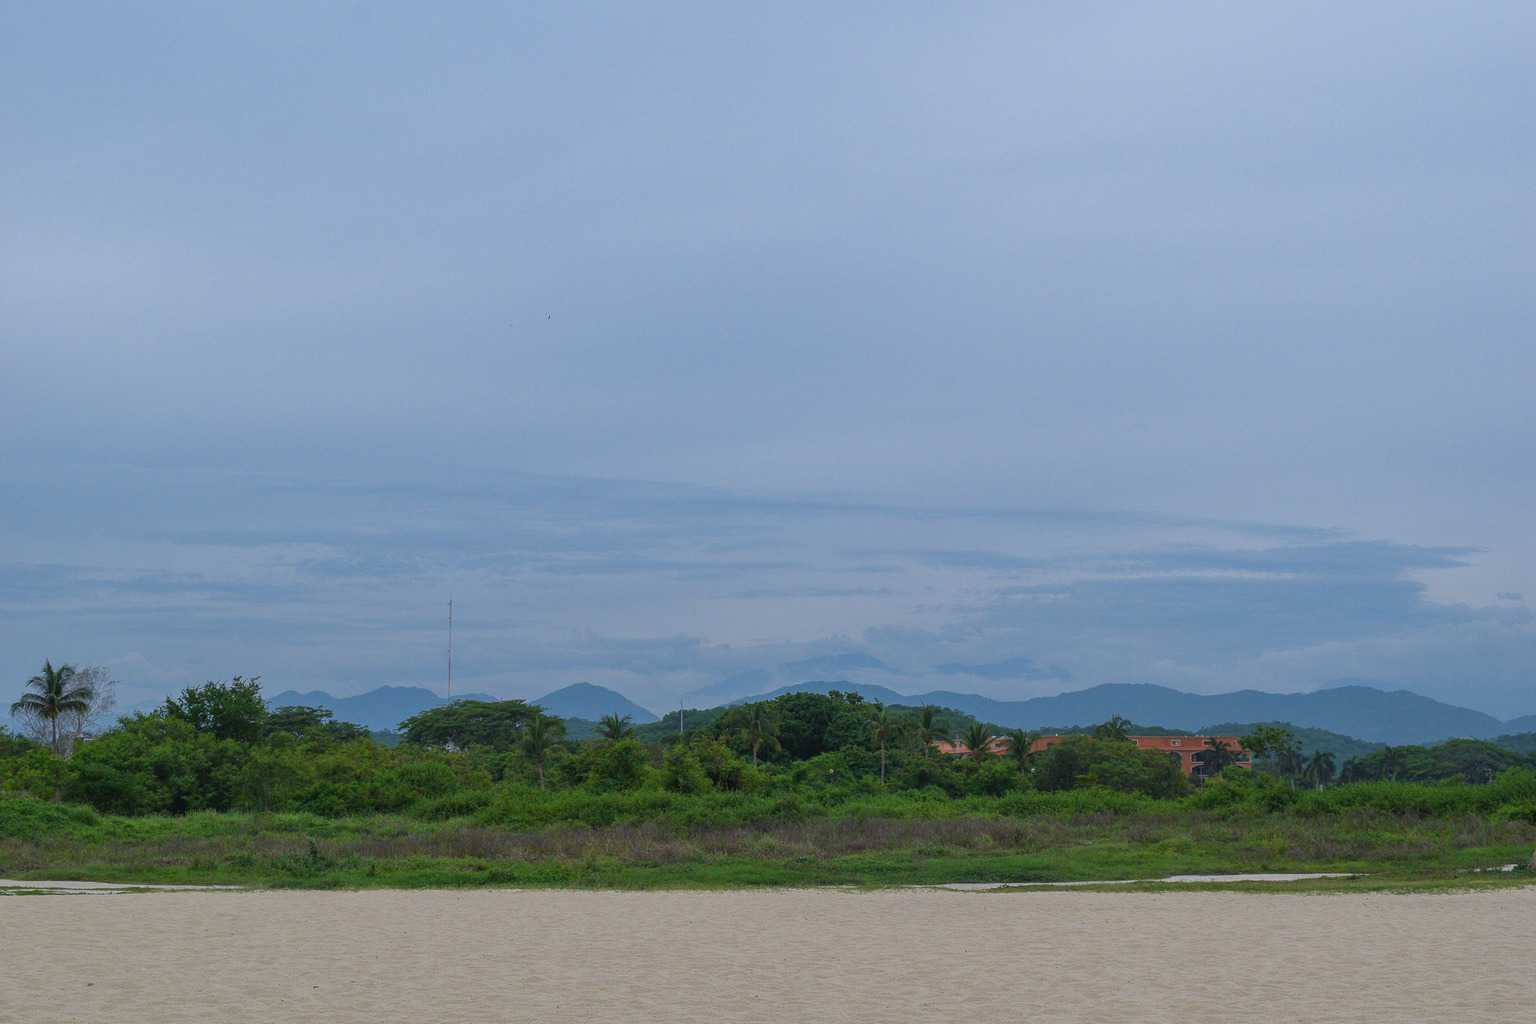 views of the hills and jungles in Huatulco